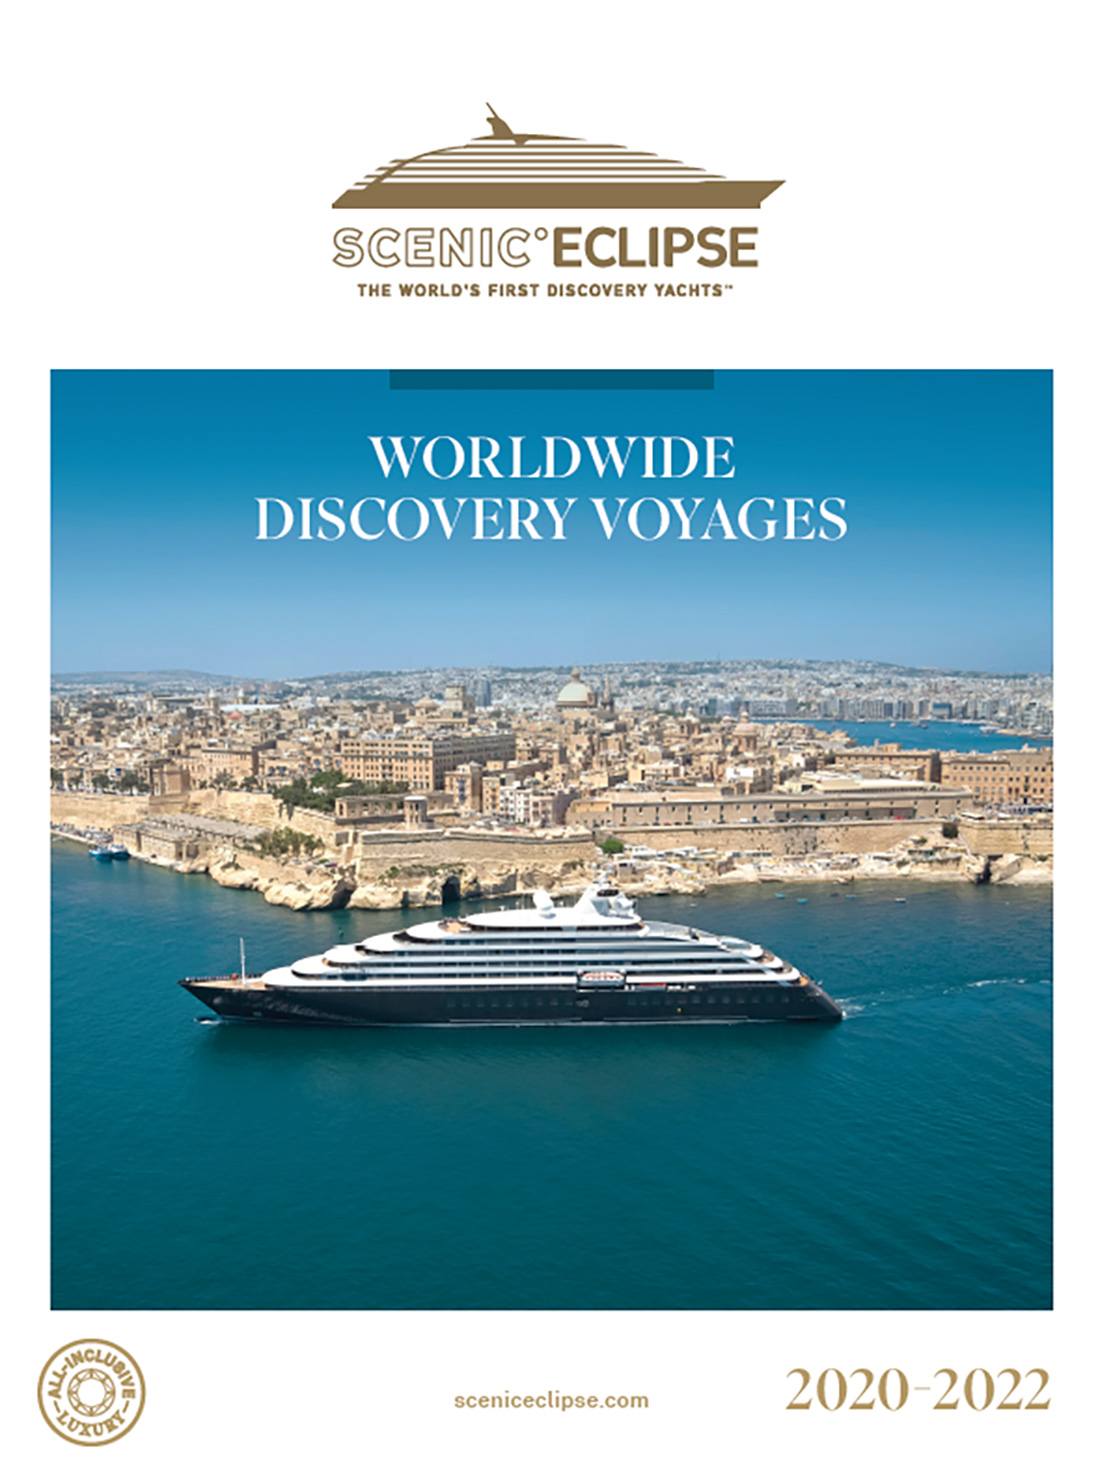 SCenic Eclipse brochure 2020